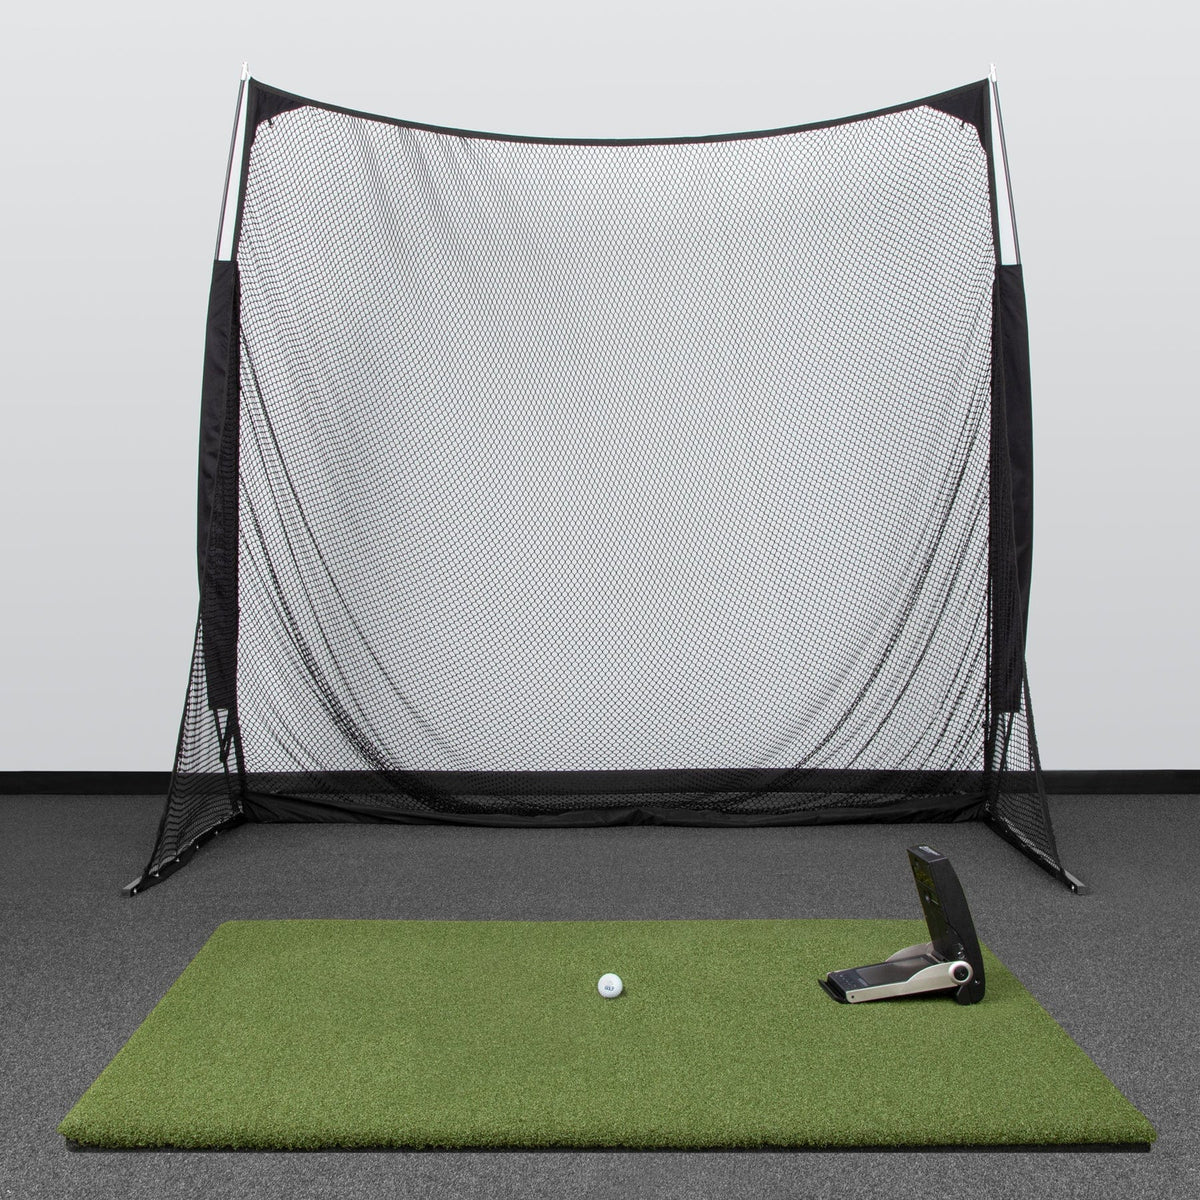 GC2 SwingNet Golf Simulator Package + FSX Software